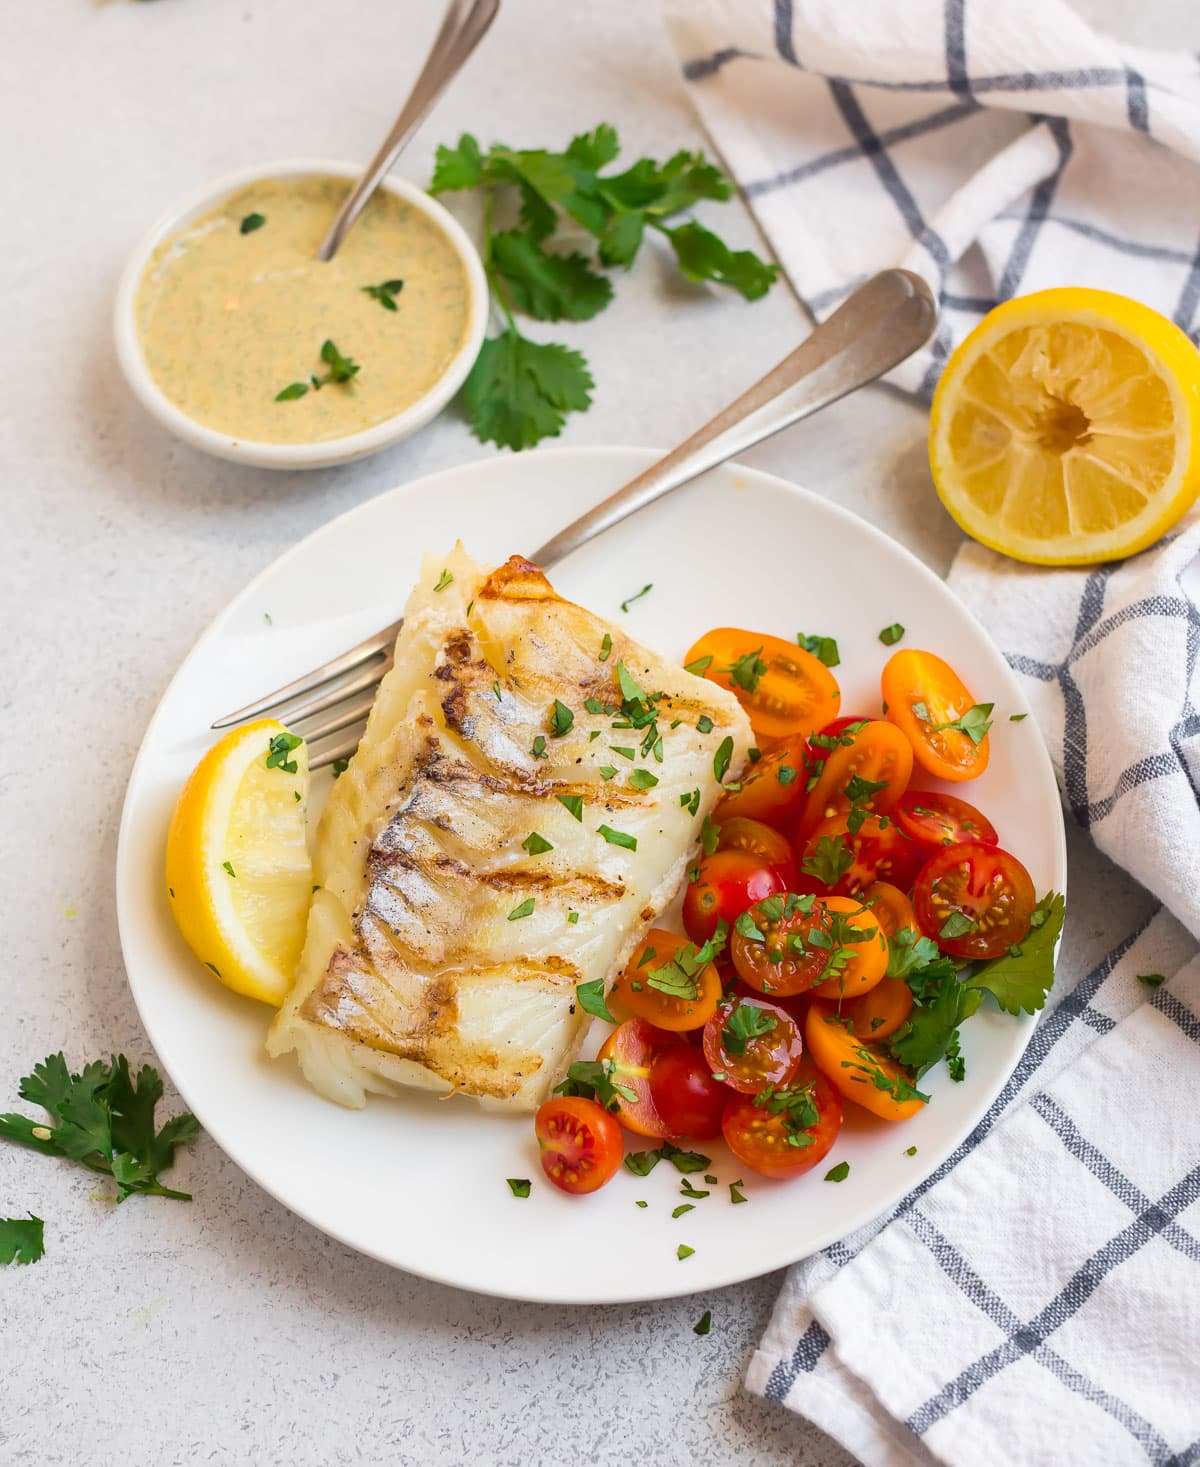 Grilled cod with cilantro yogurt sauce and tomatoes